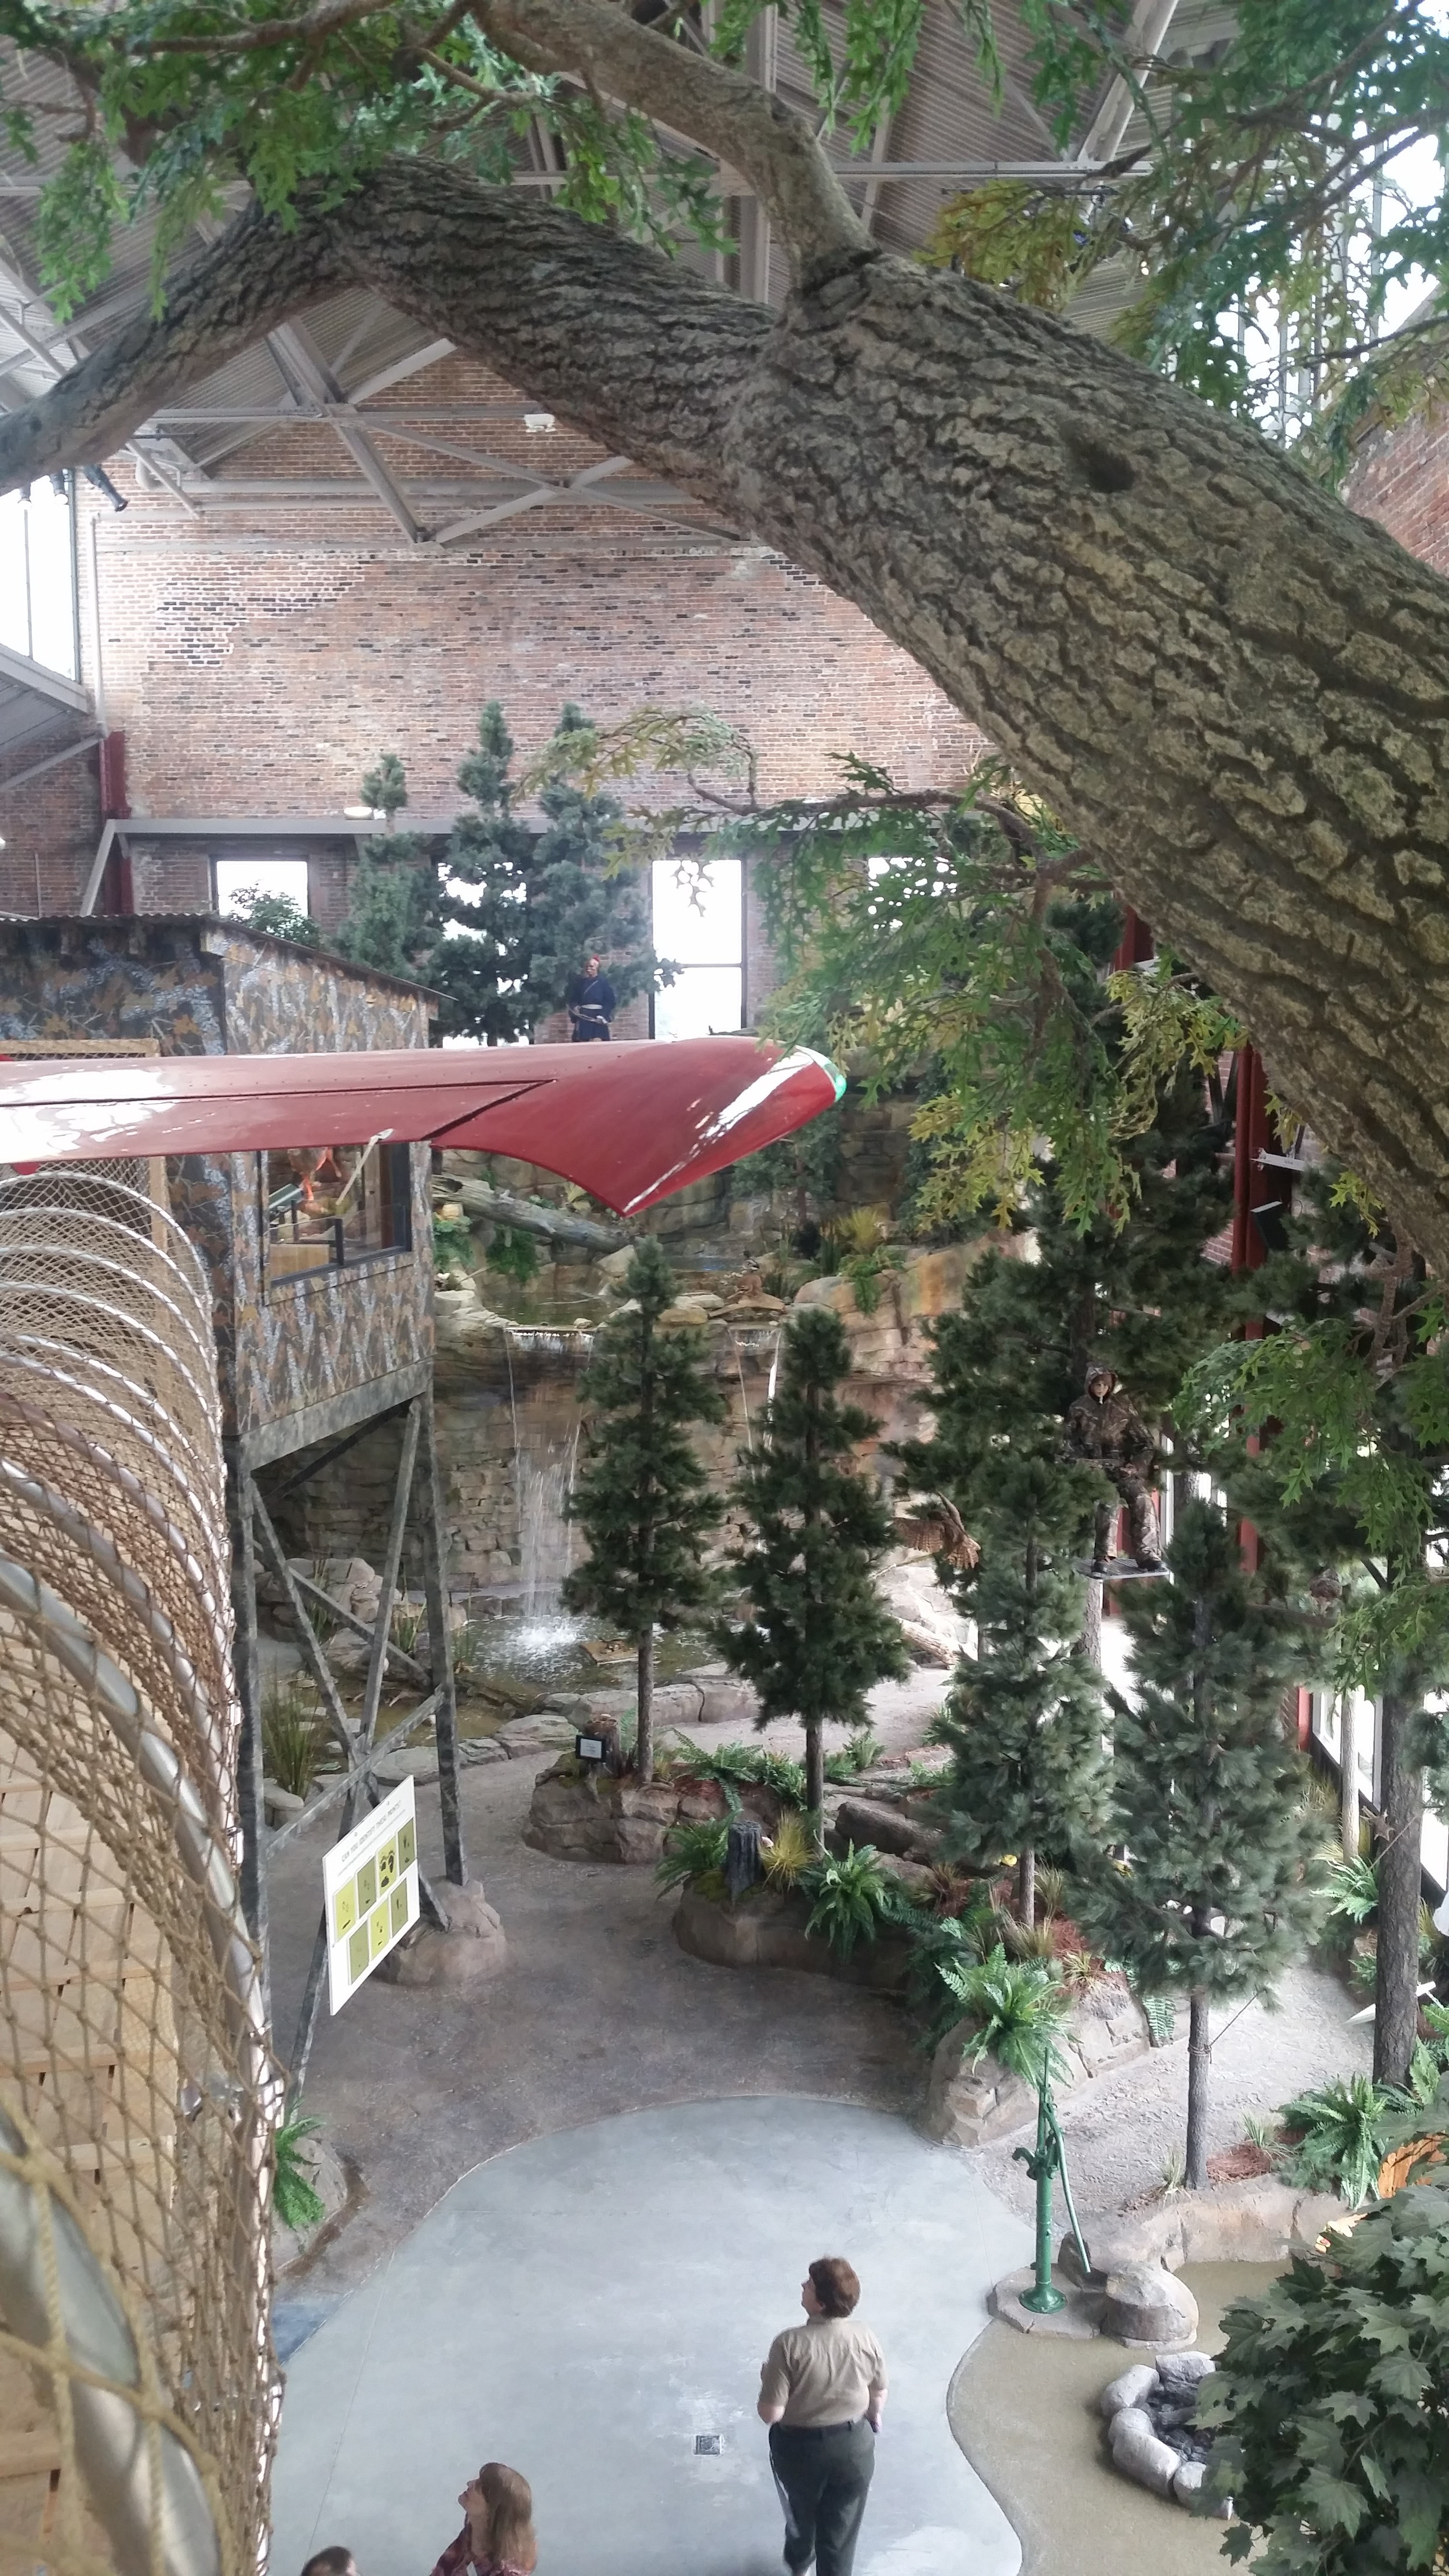 view from the 2nd story